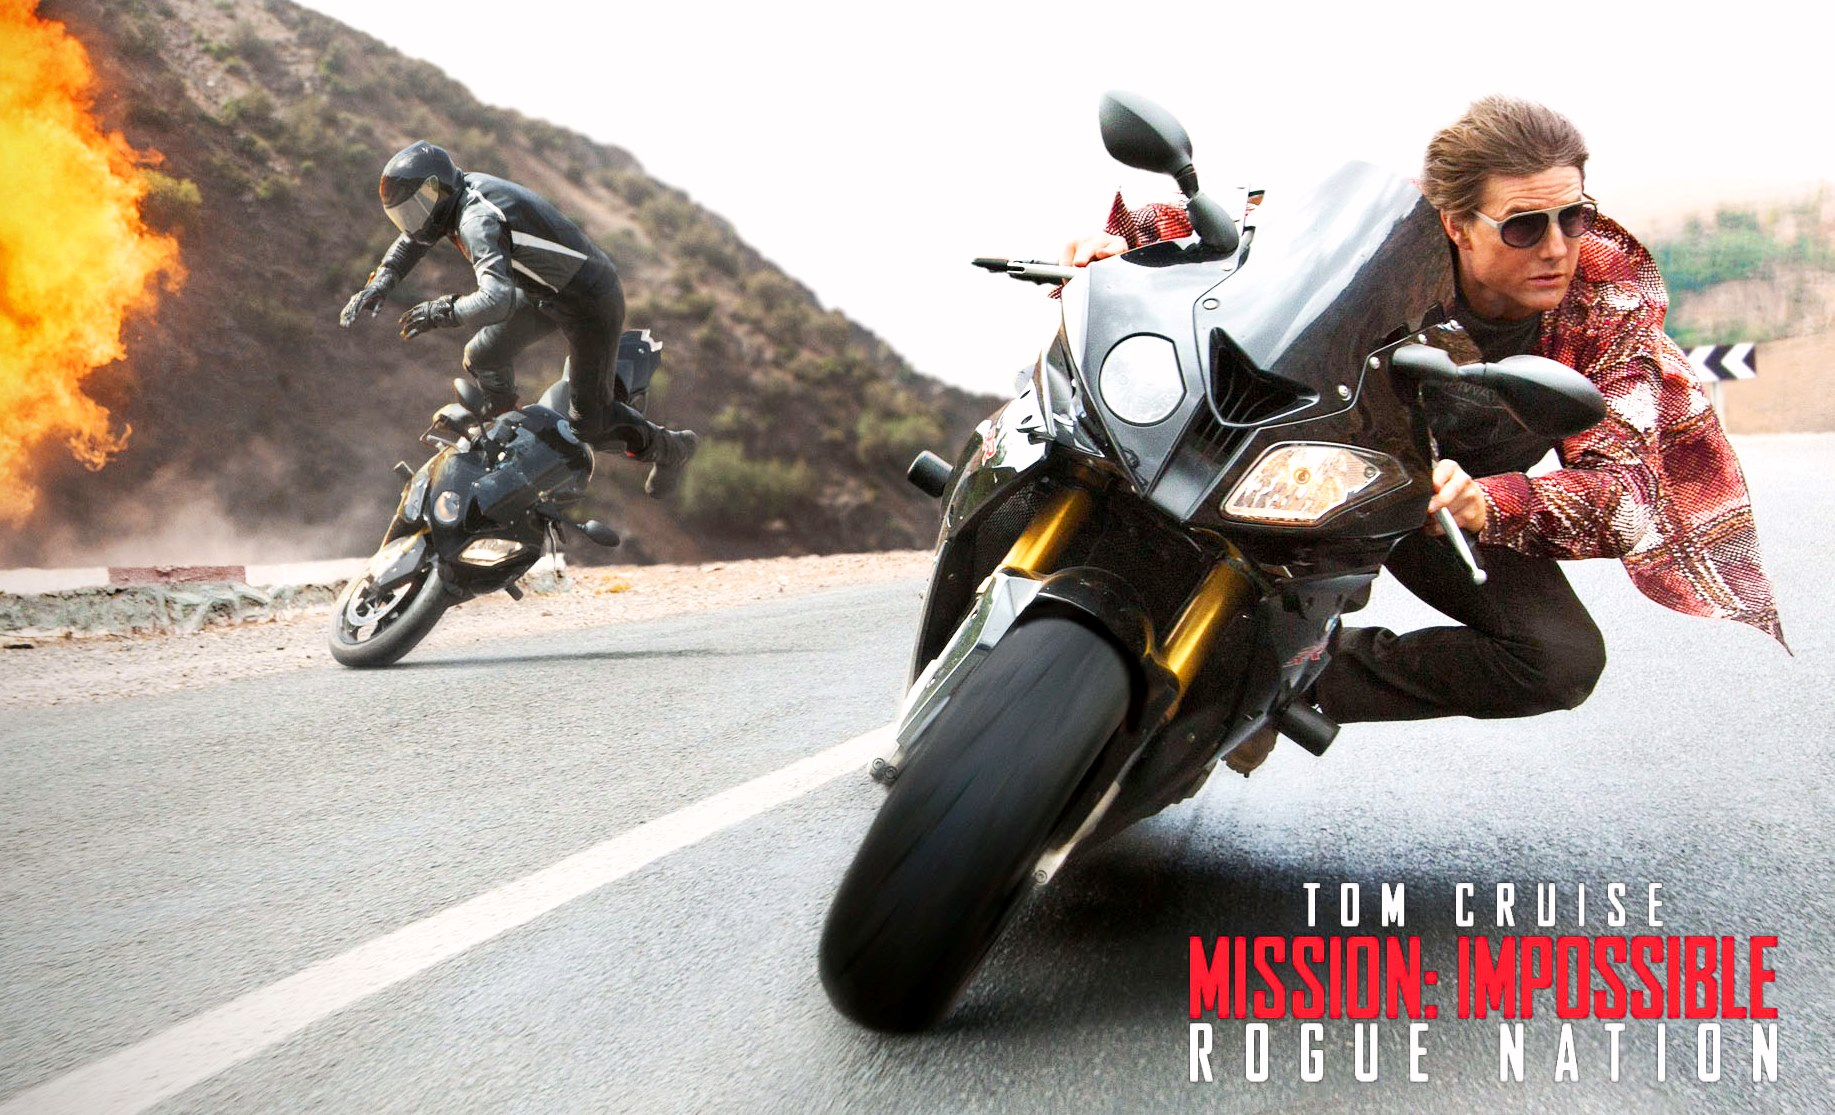 Mission impossible 5 2015